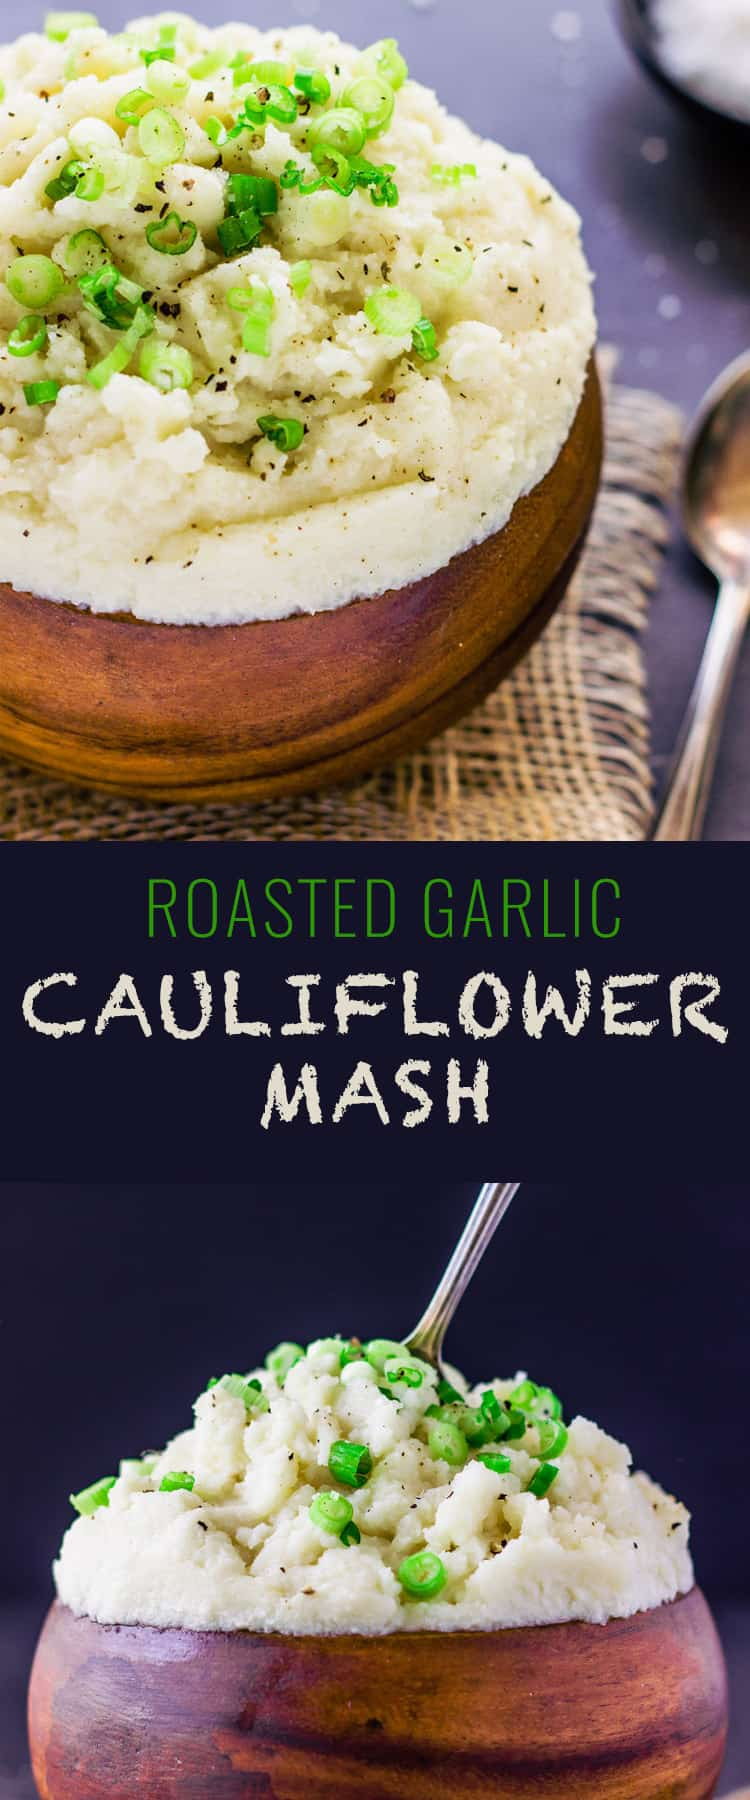 This Roasted Garlic Cauliflower Mash is a healthier, yet very tasty alternative to traditional mashed potatoes. A delicious low-carb side-dish ready in under 20 minutes